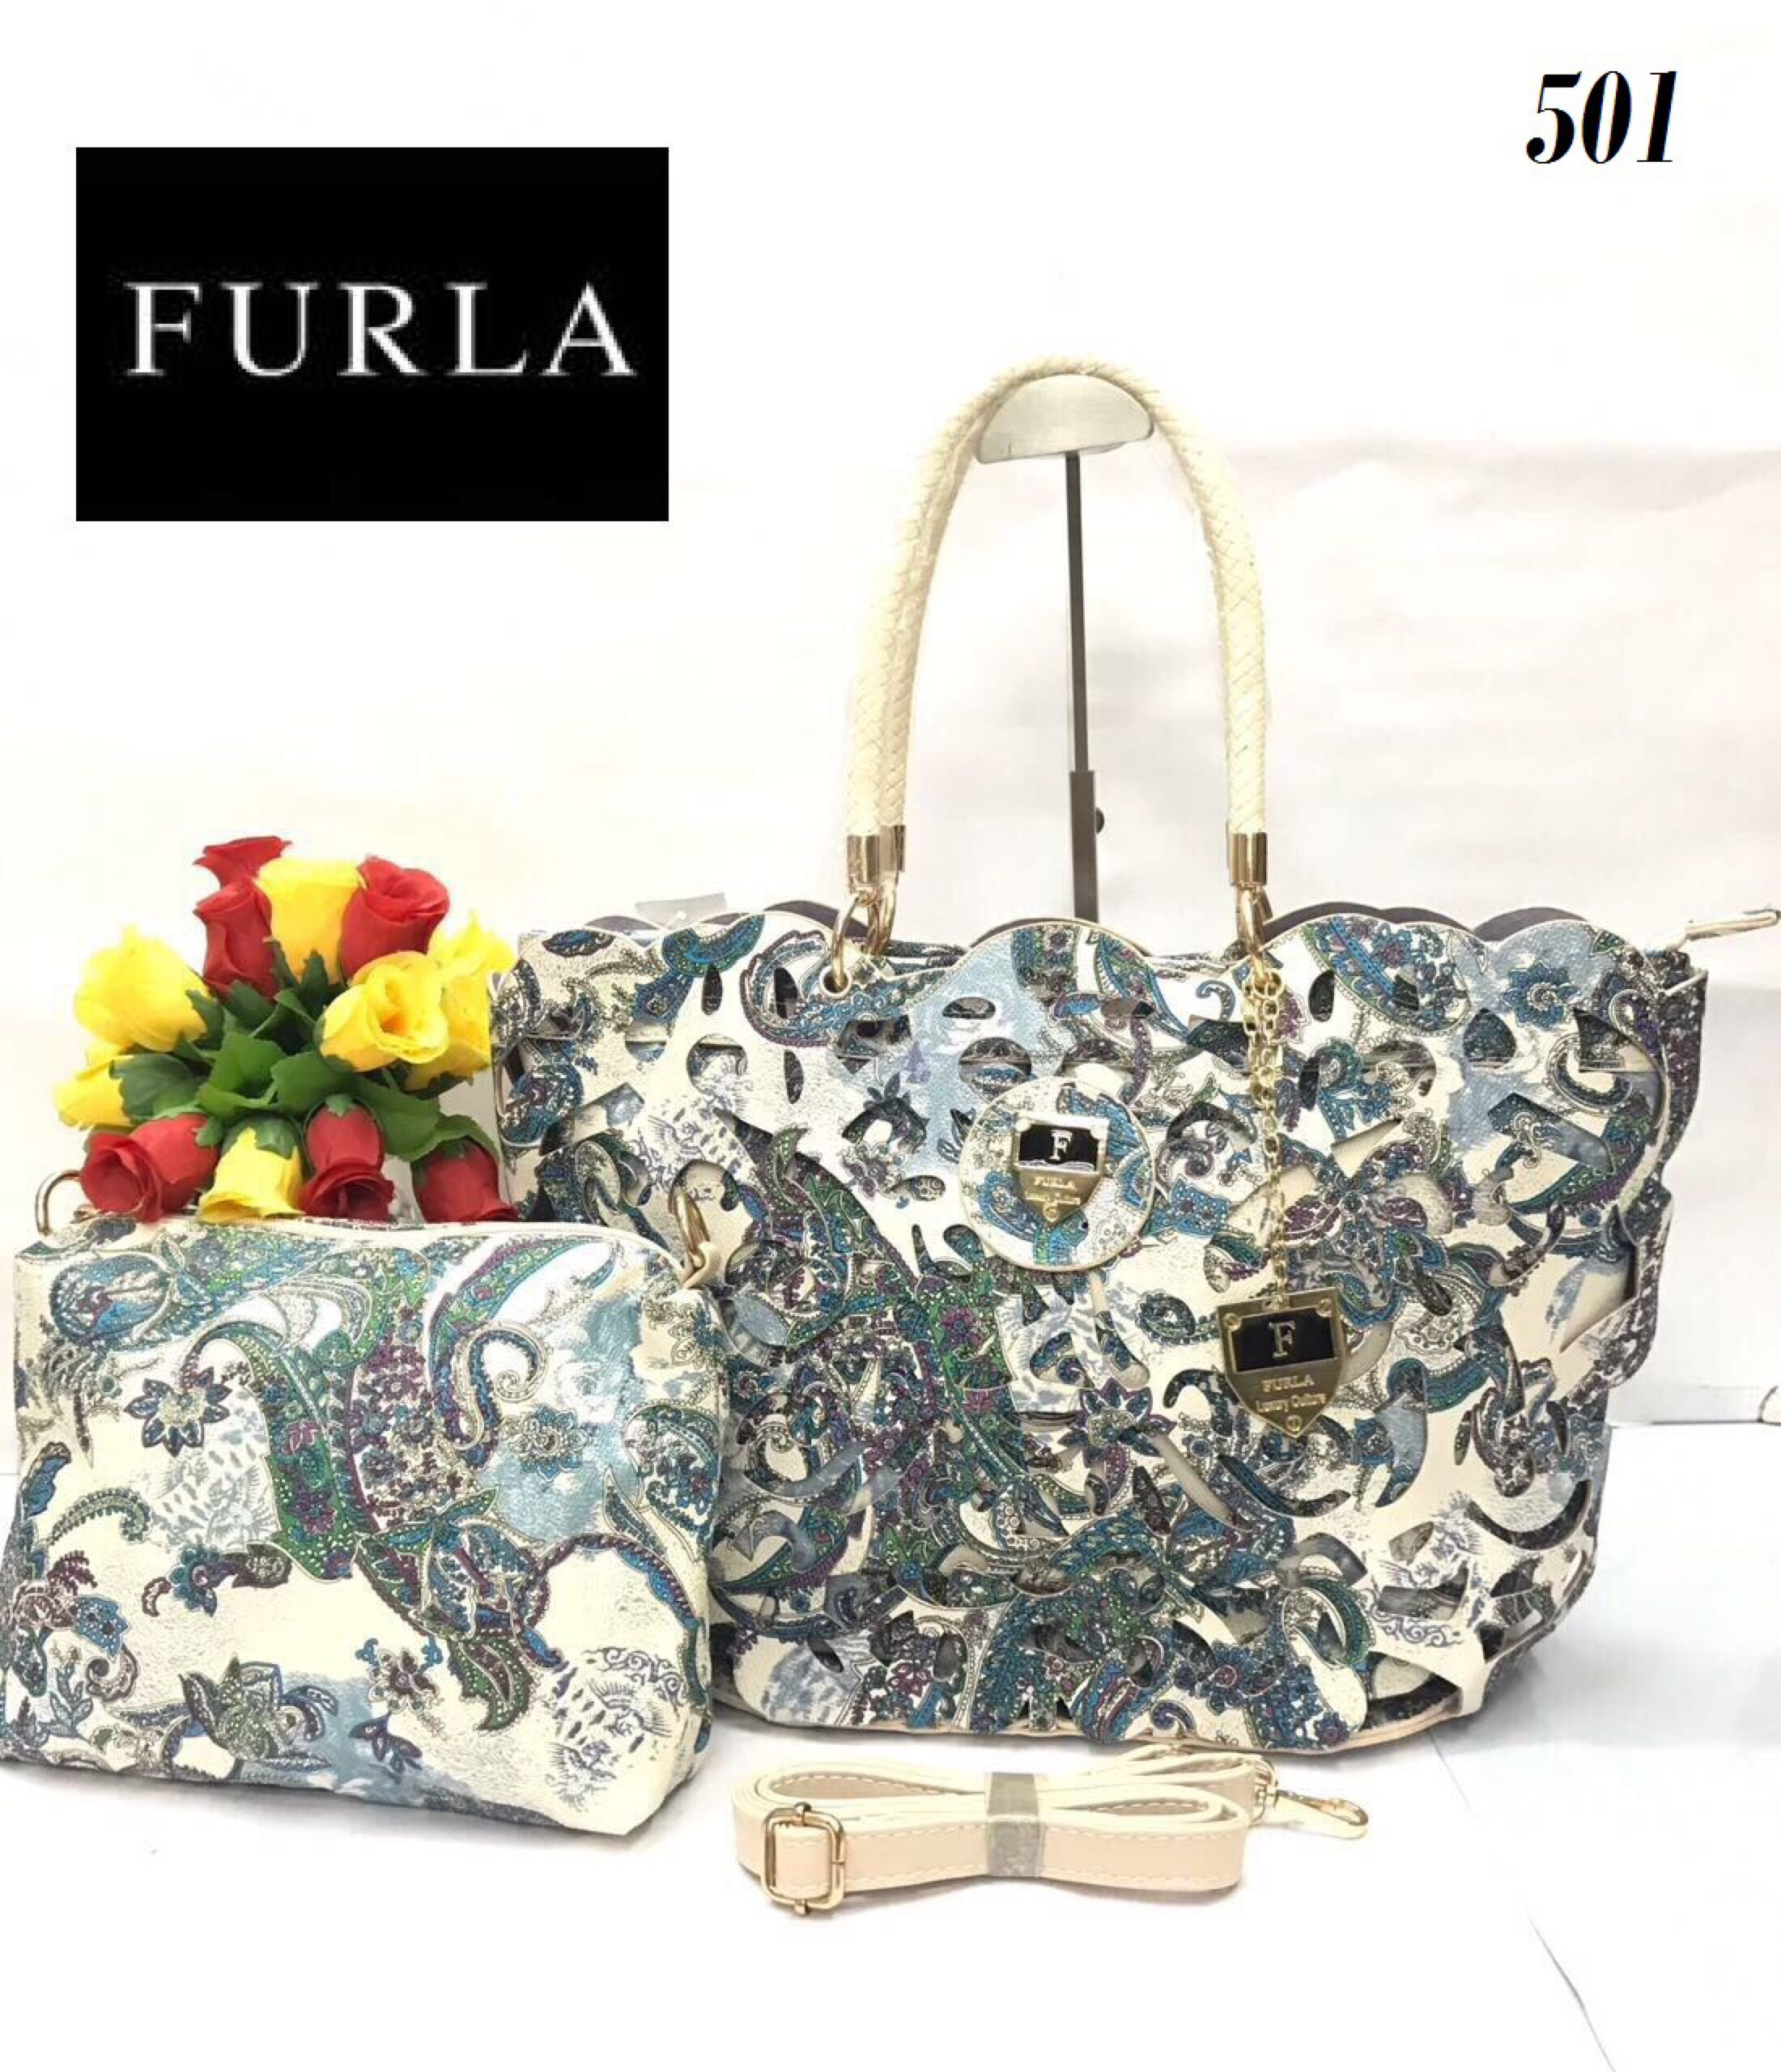 Introducing New Colours in the Furla HandBags Collection 👜   2-piece Set available in 7 different colours.   Order before Stock Runs Out. 📞08291171057 📧sunitacreationhouse@gmail.com  Follow us:- www.facebook.com/sunitacreationhouse www.instagram.com/sunitacreationhouse www.roposo.com/@sunitacreationhouse  #handbag #handbags #purse #purses #slingbag #slingbags #sling #tote #totes #totebag #furla  #furlabag #twopiecebag #2 #2pieceset #colours #colour #differentcolours #range #newcolours #colourful #colourpop #trending #furlabags #brand #brands #brandedstuff #branded #internationalbrand #internationalbrands #bags